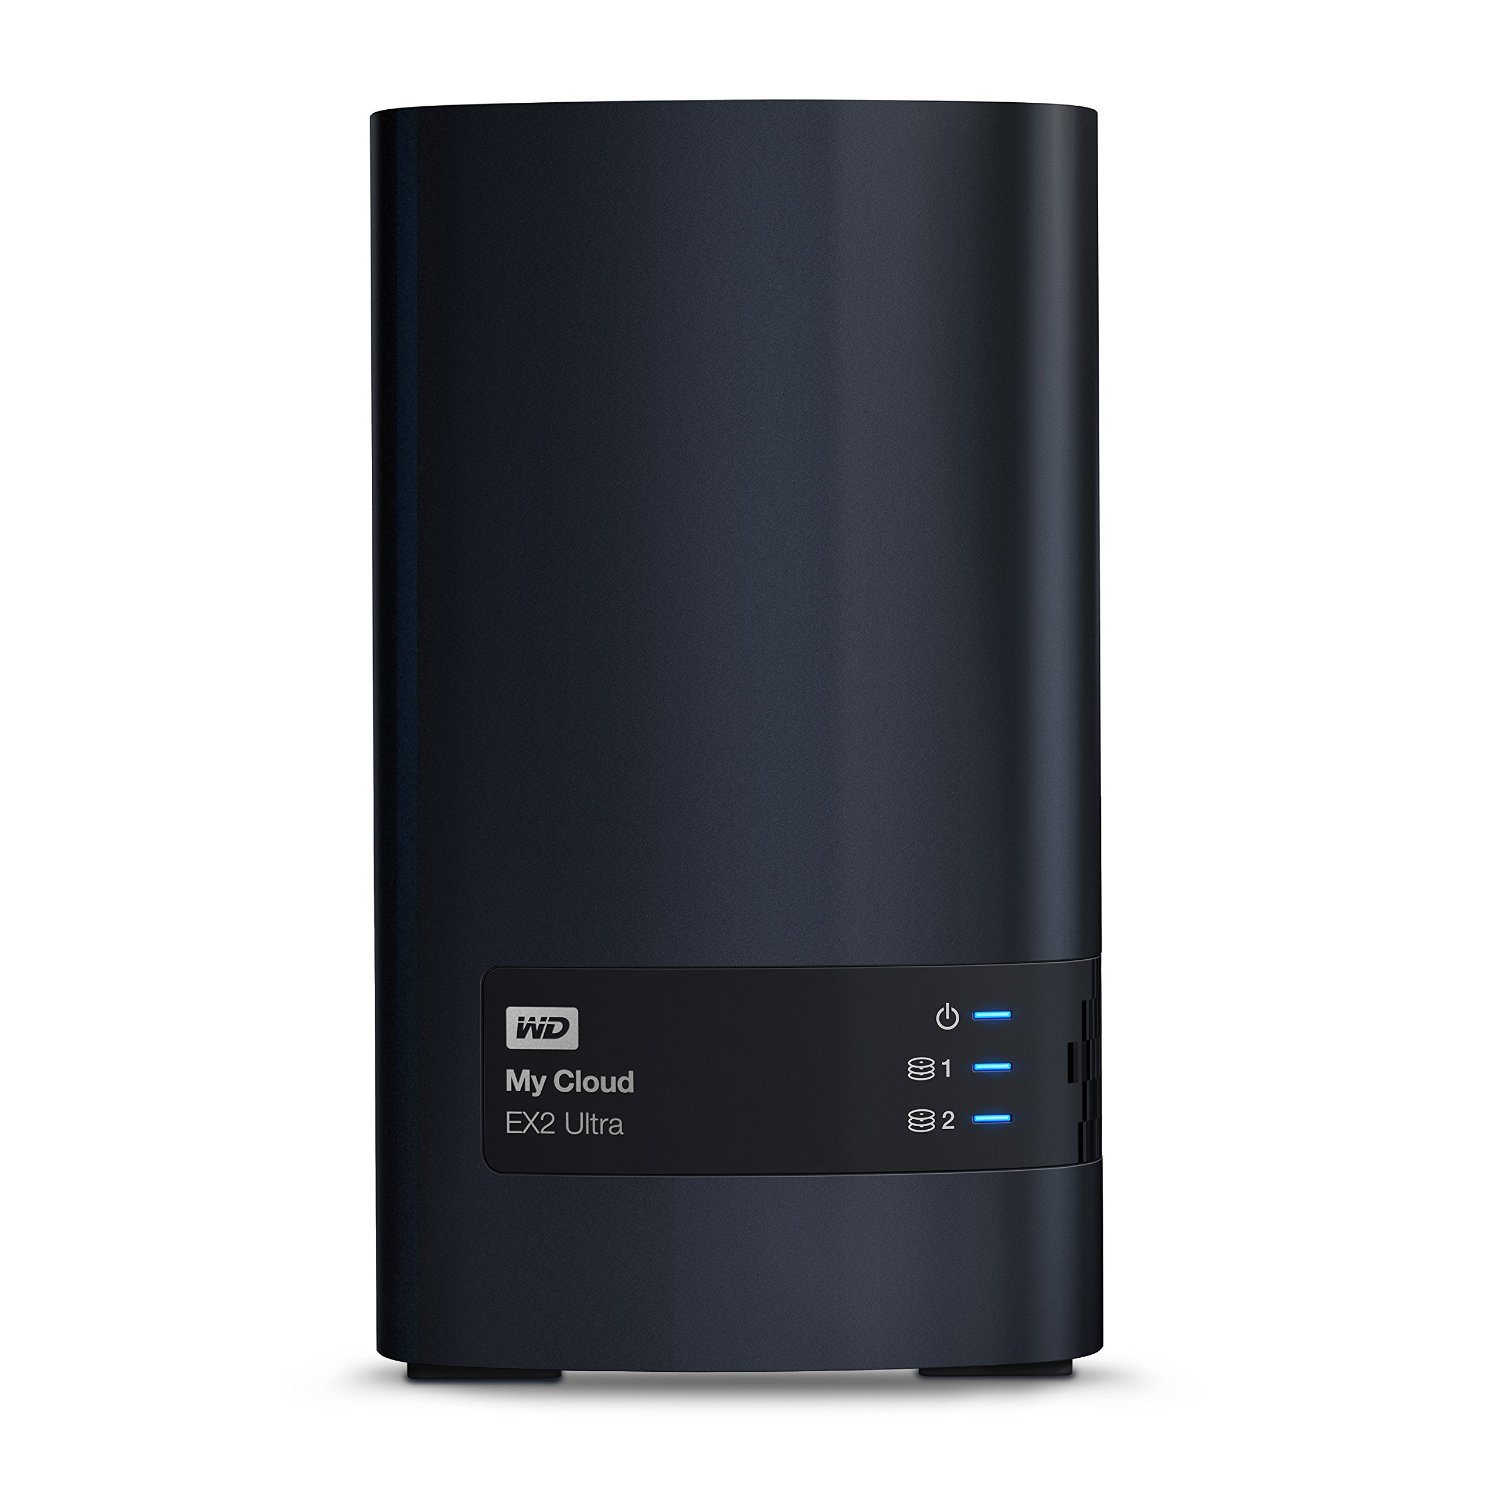 WD MY CLOUD EX2 ULTRA 16TB EXTERNAL HDD